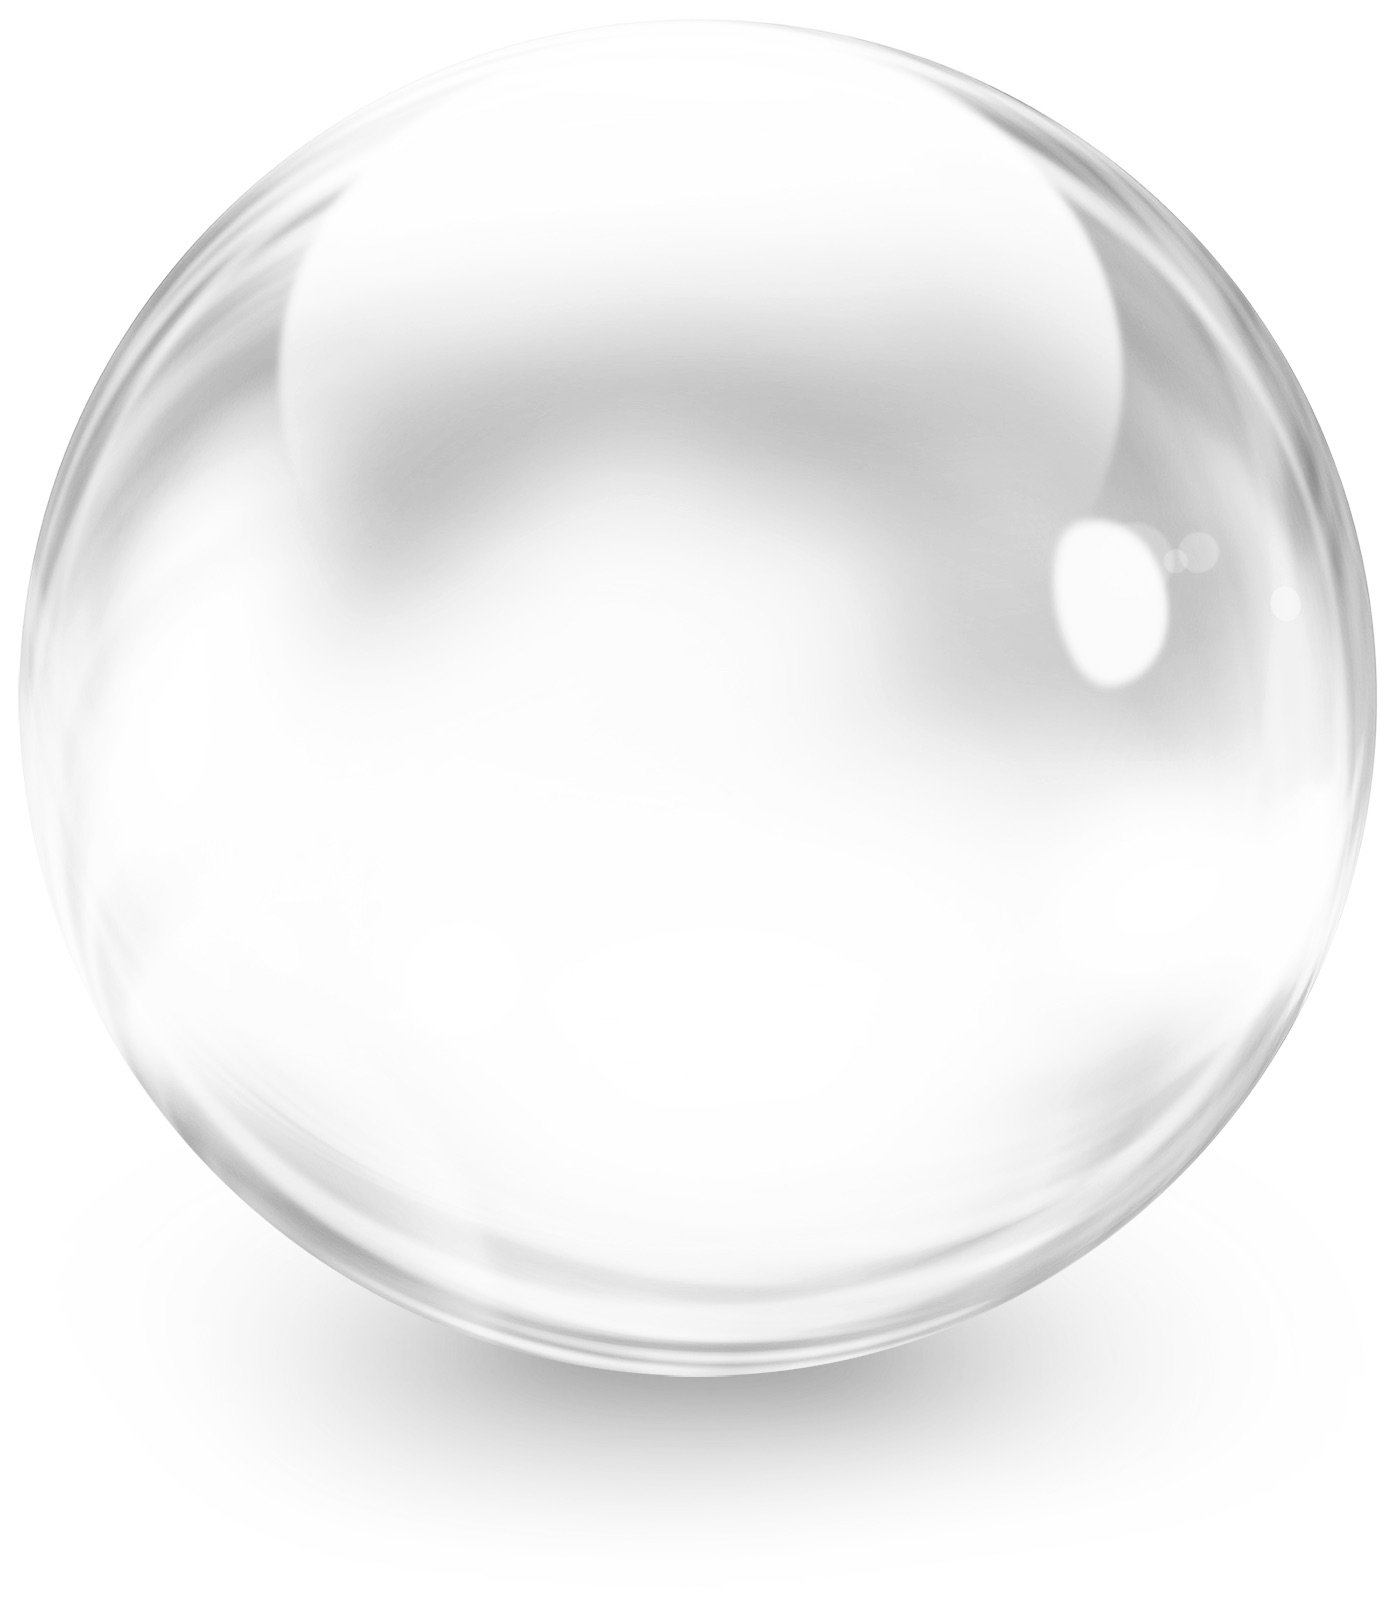 White Transparent Bubble 476.56 Kb